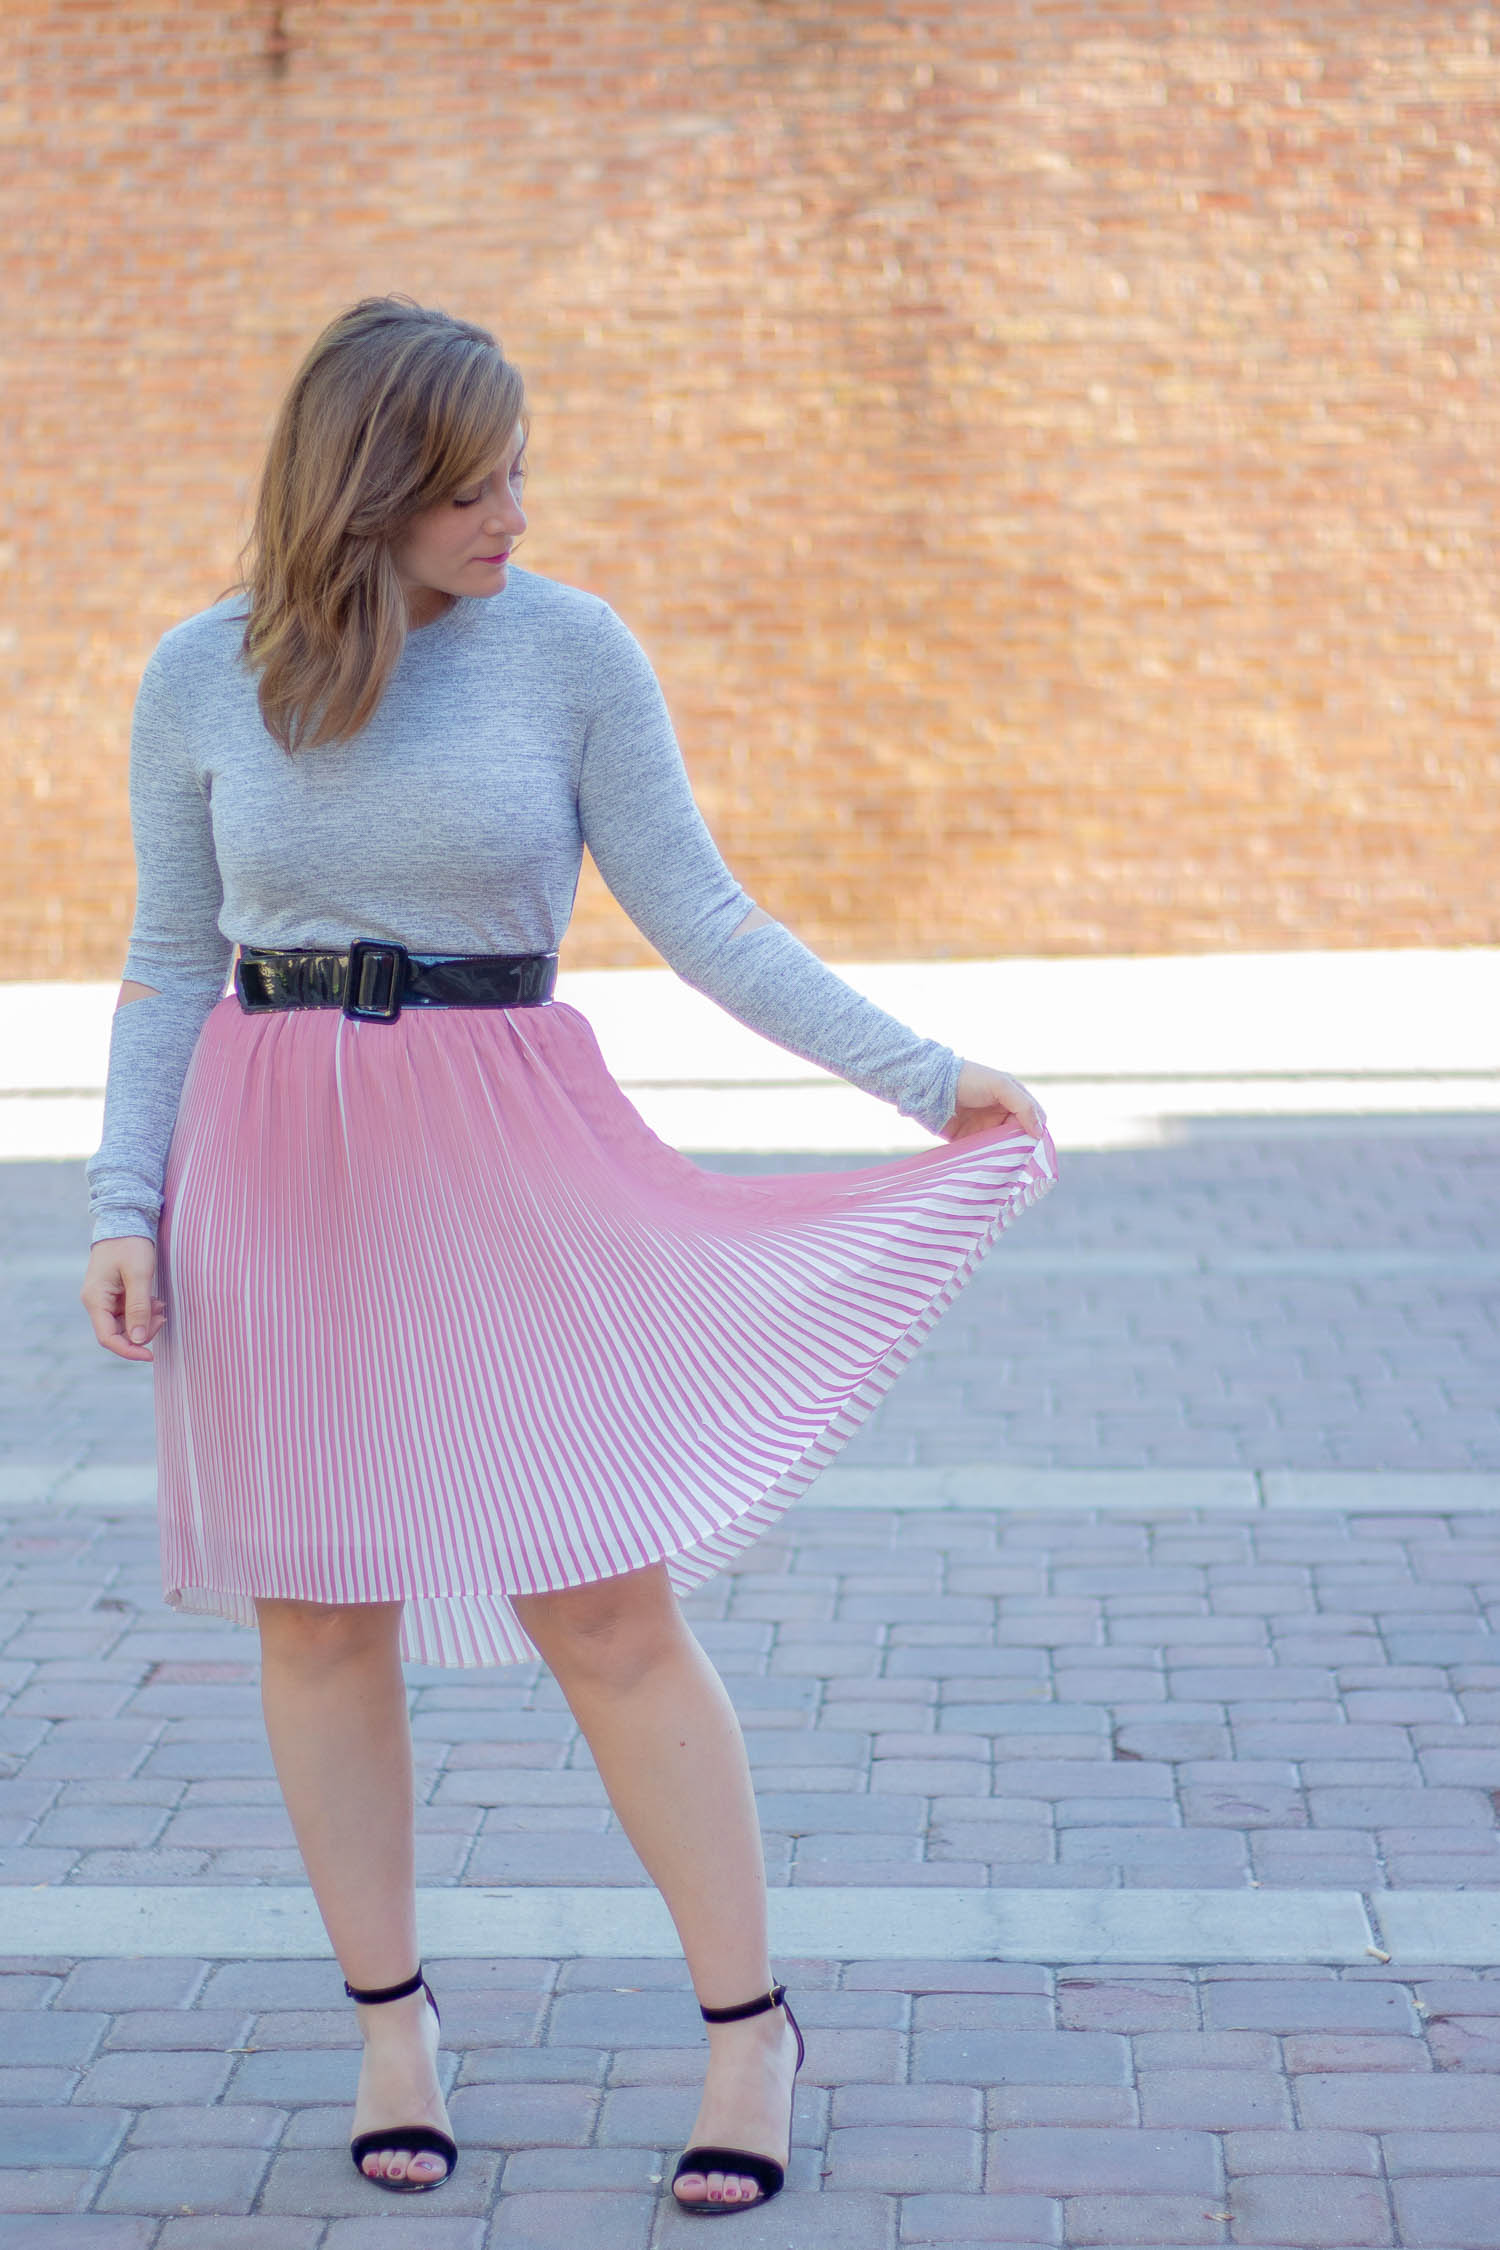 Pink Skirt Outfit.jpg